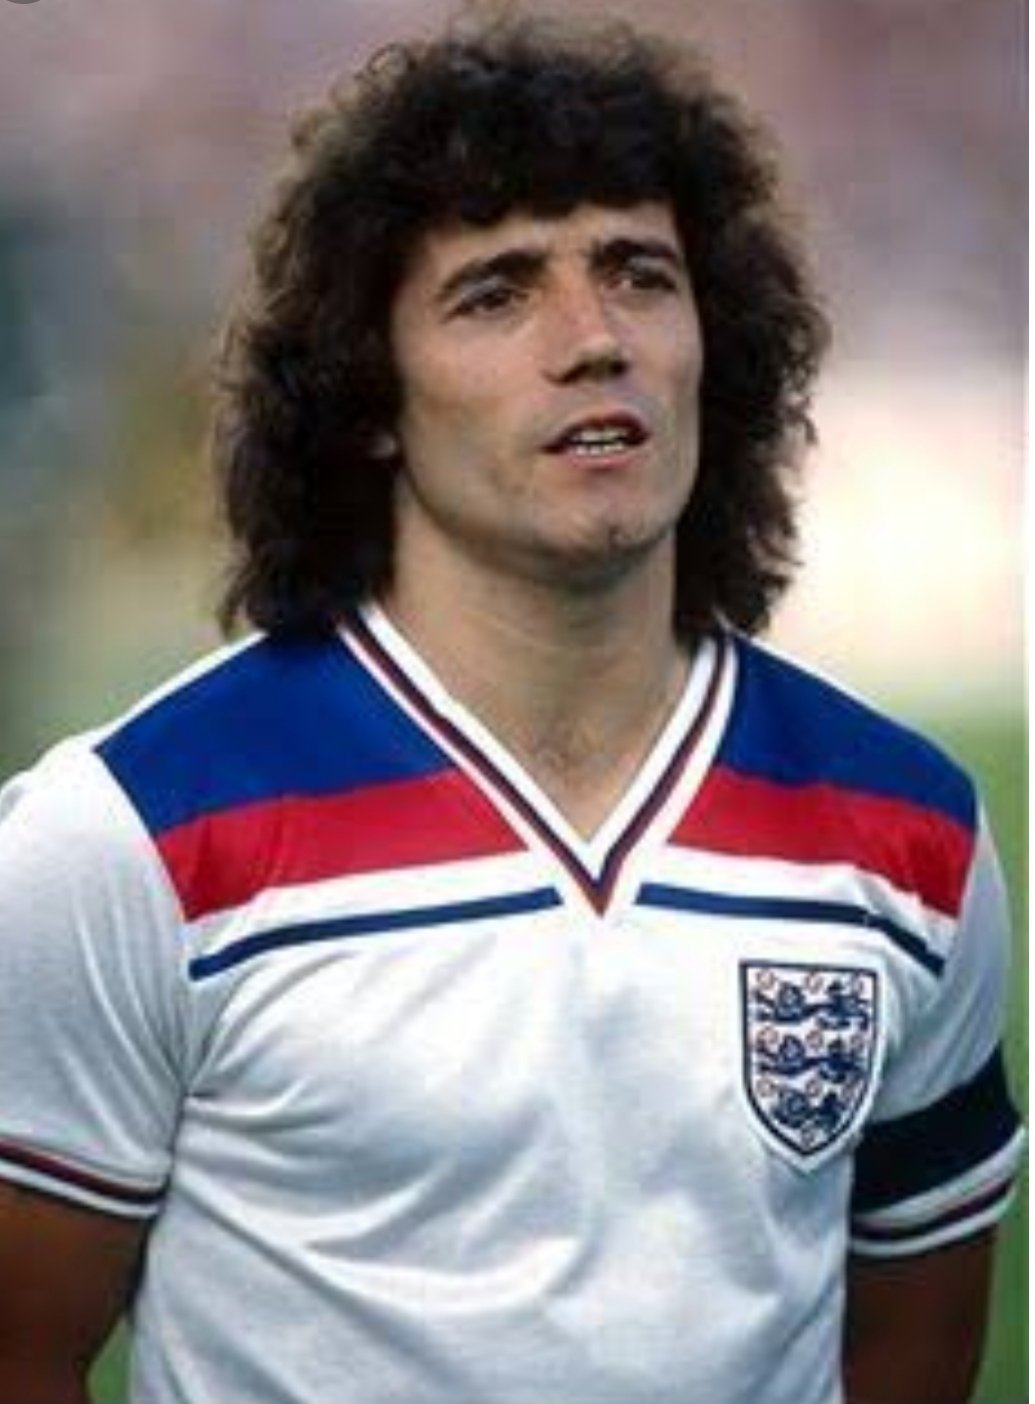 Happy birthday Kevin Keegan, and we should really bring back both the kit and the hair to modern football